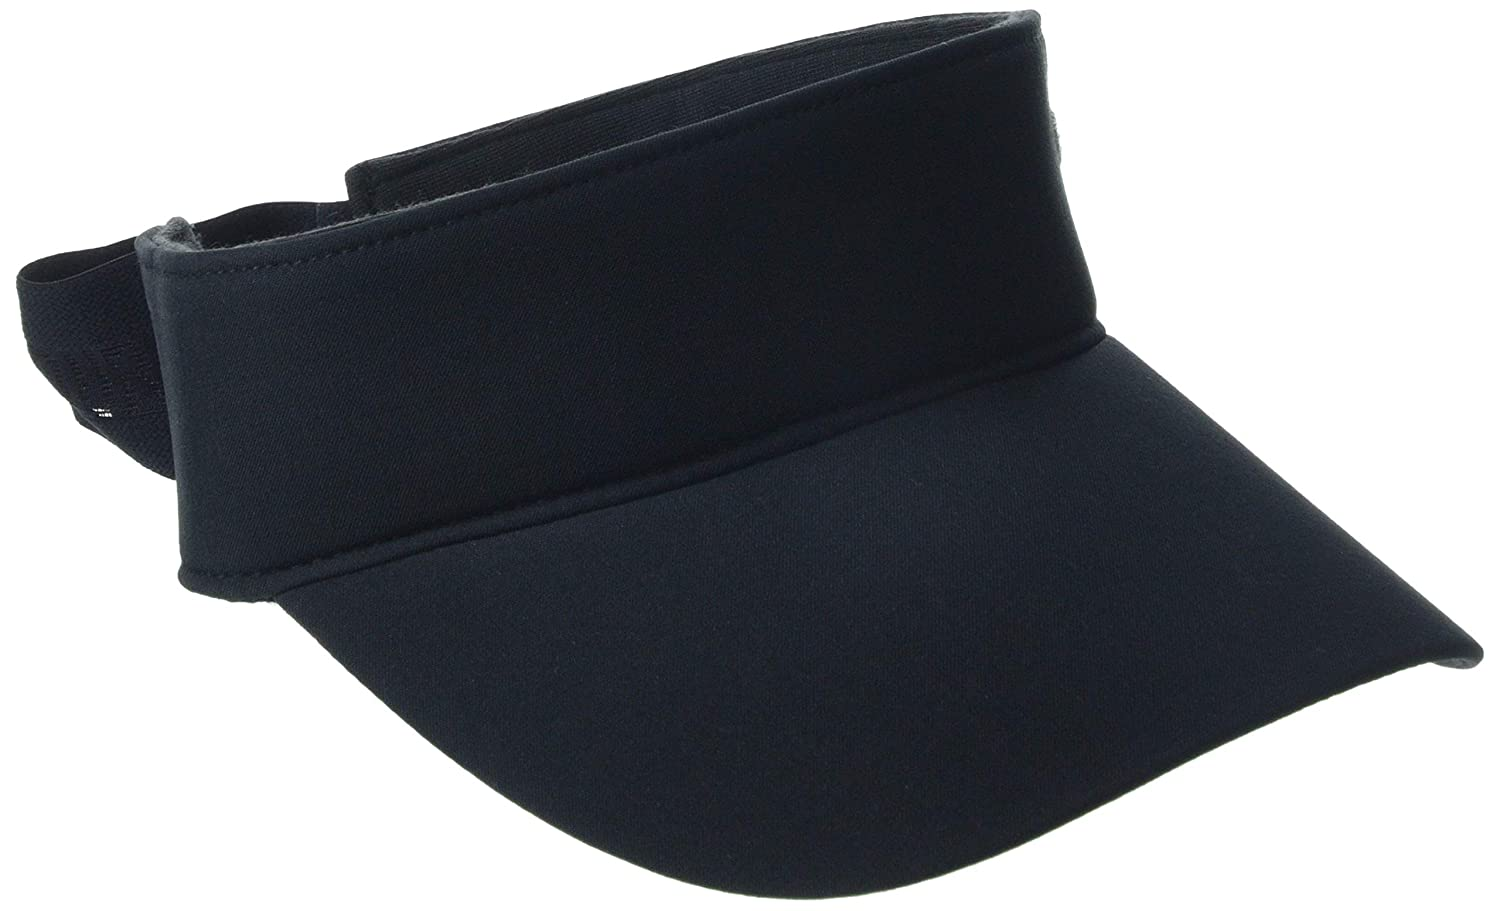 a4f312a4387 Under Armour Women s s Links 2.0 Visor  Amazon.co.uk  Sports   Outdoors